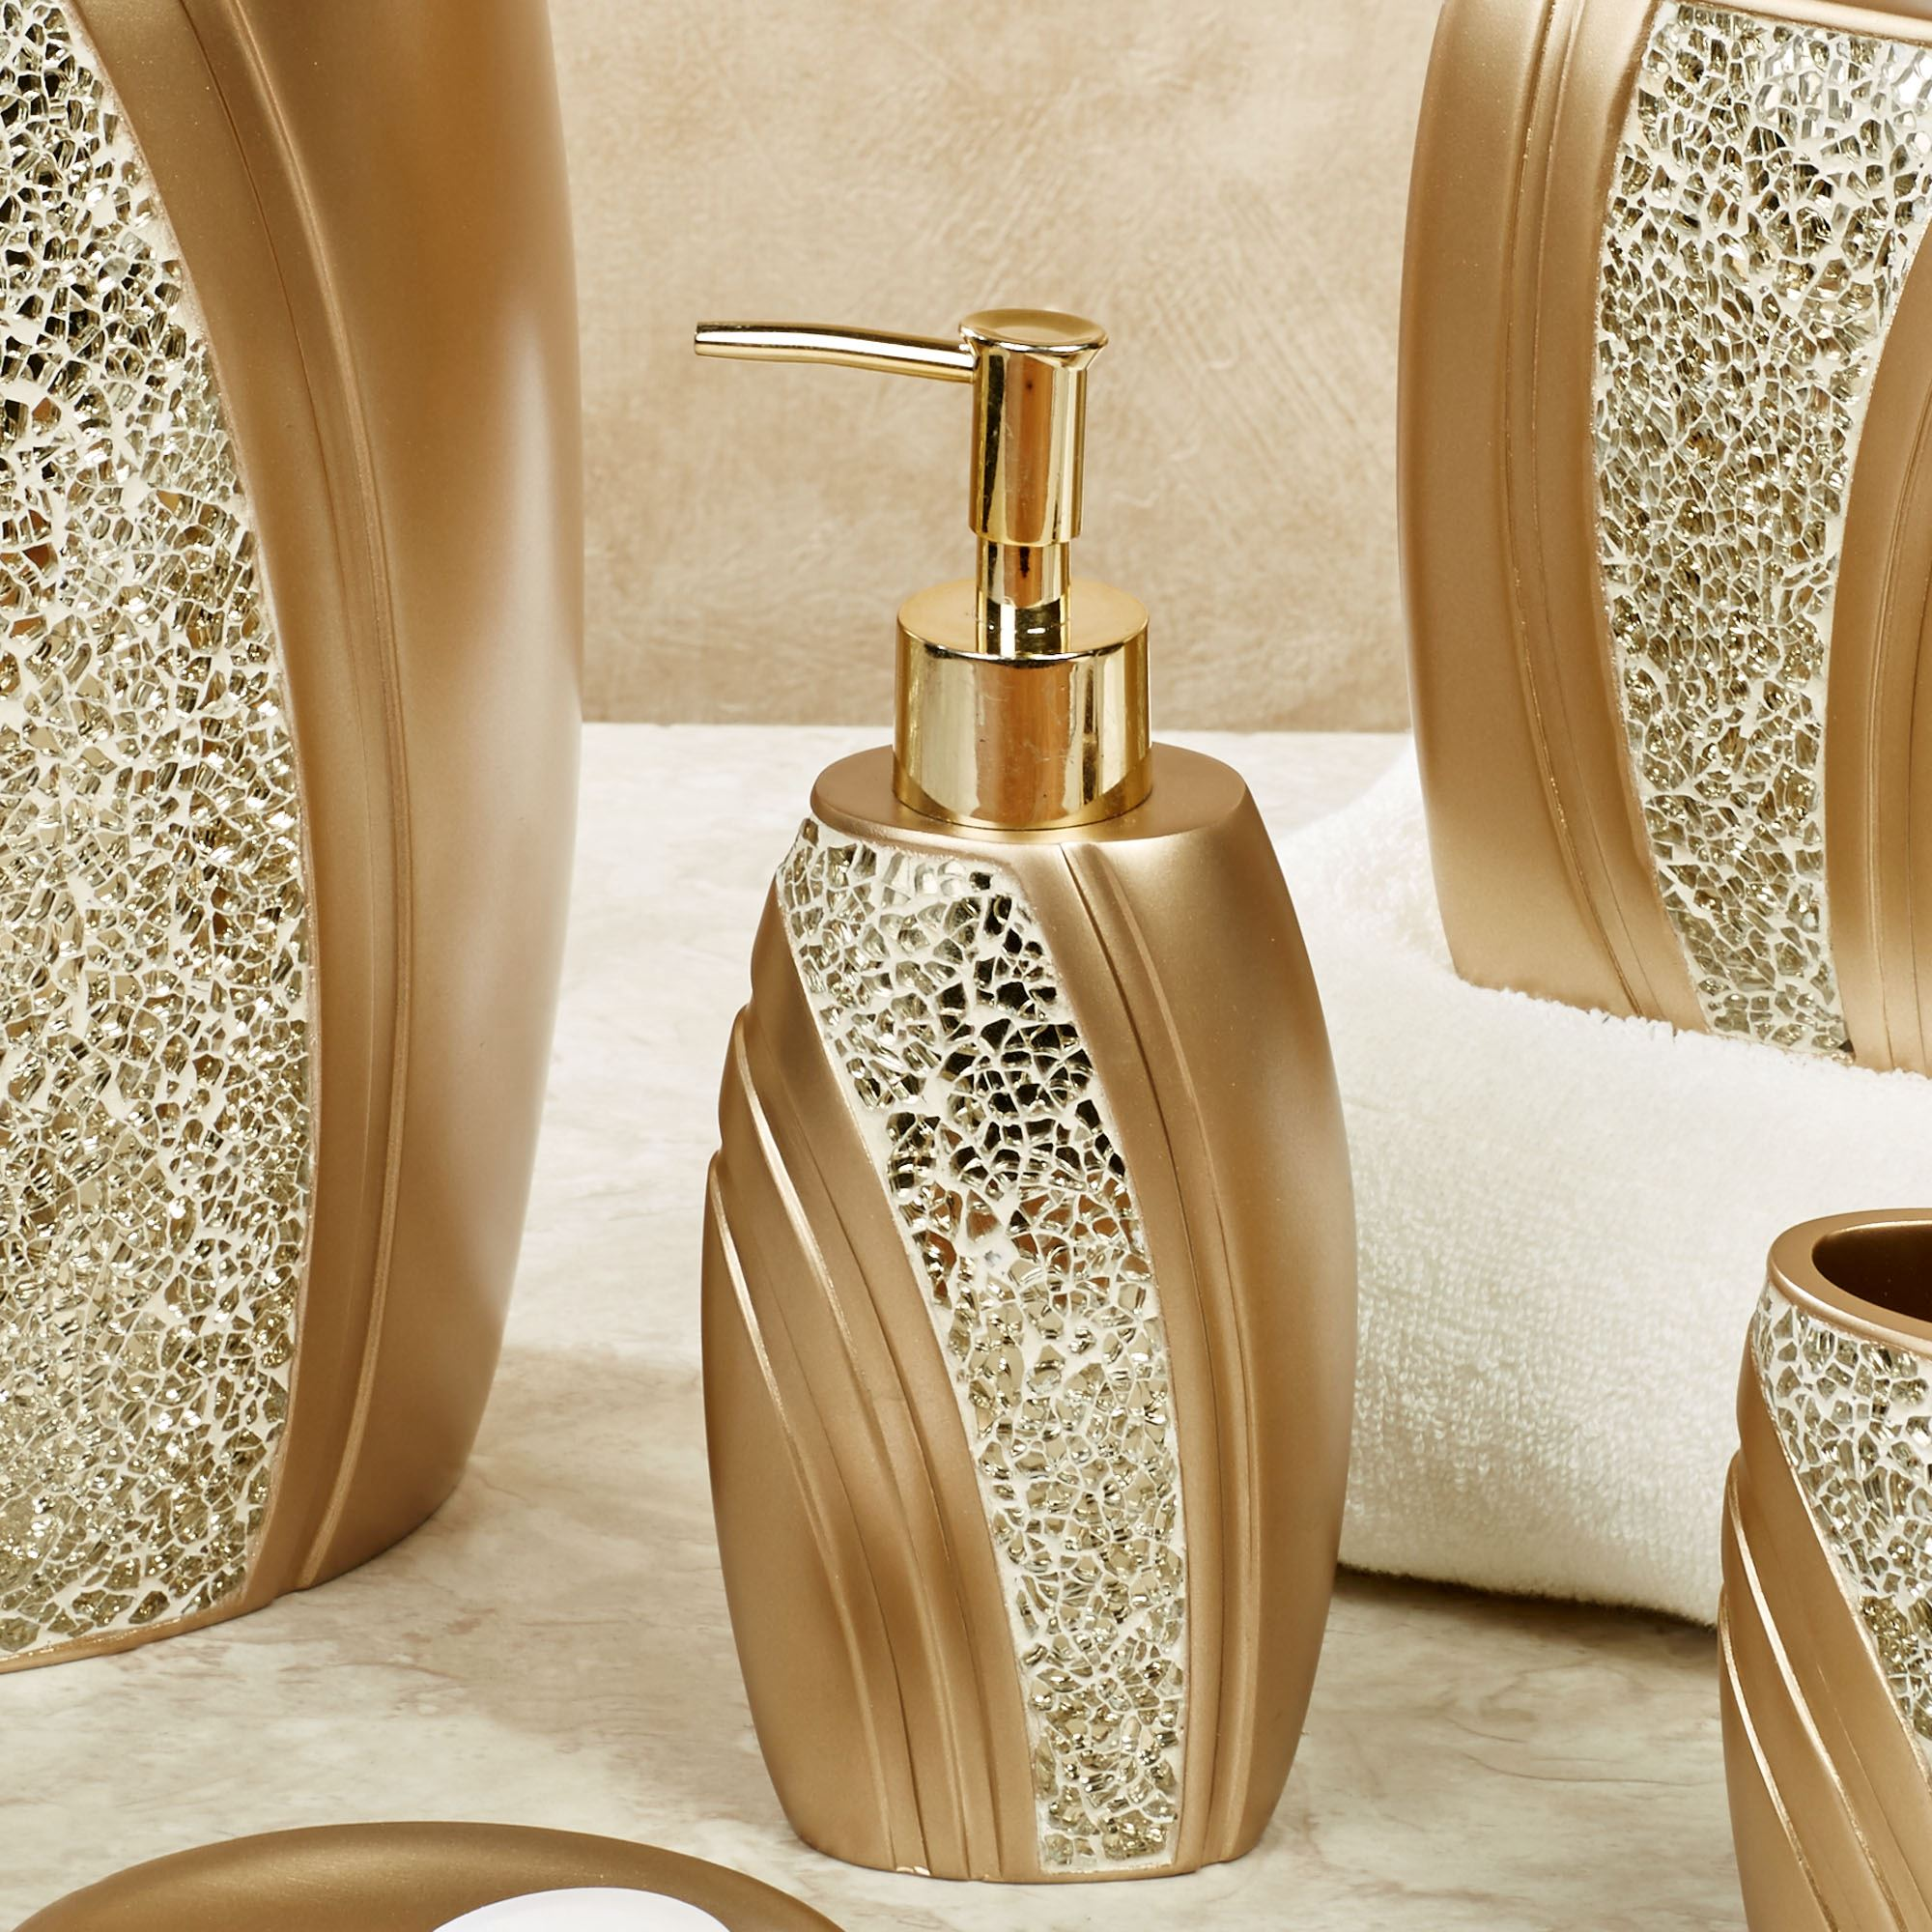 Charmant Glamour Lotion Soap Dispenser Champagne Gold